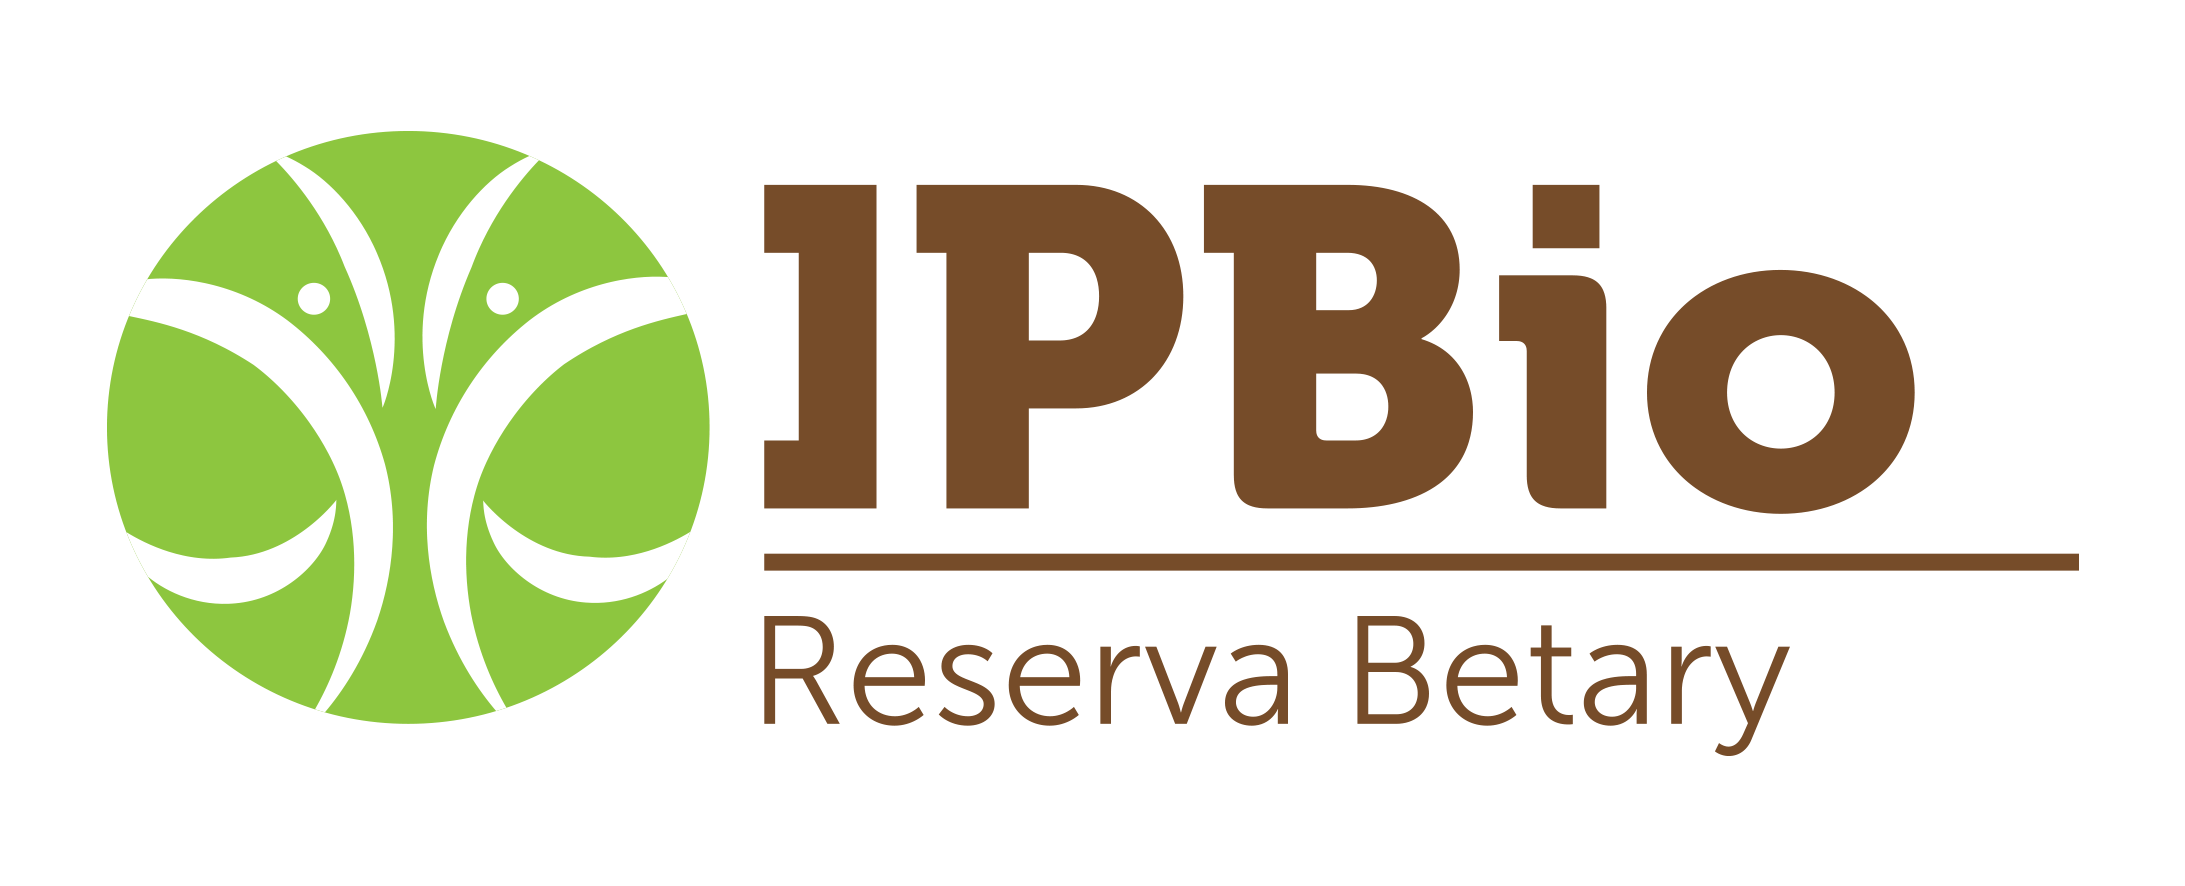 IPBIO BLOG – The Biodiversity Research Institute (IPBio) is a place where  research meets conservation. IPBio is a non-governmental, non-profit  organization that develops scientific research on biodiversity, ecology and  ethology of fauna